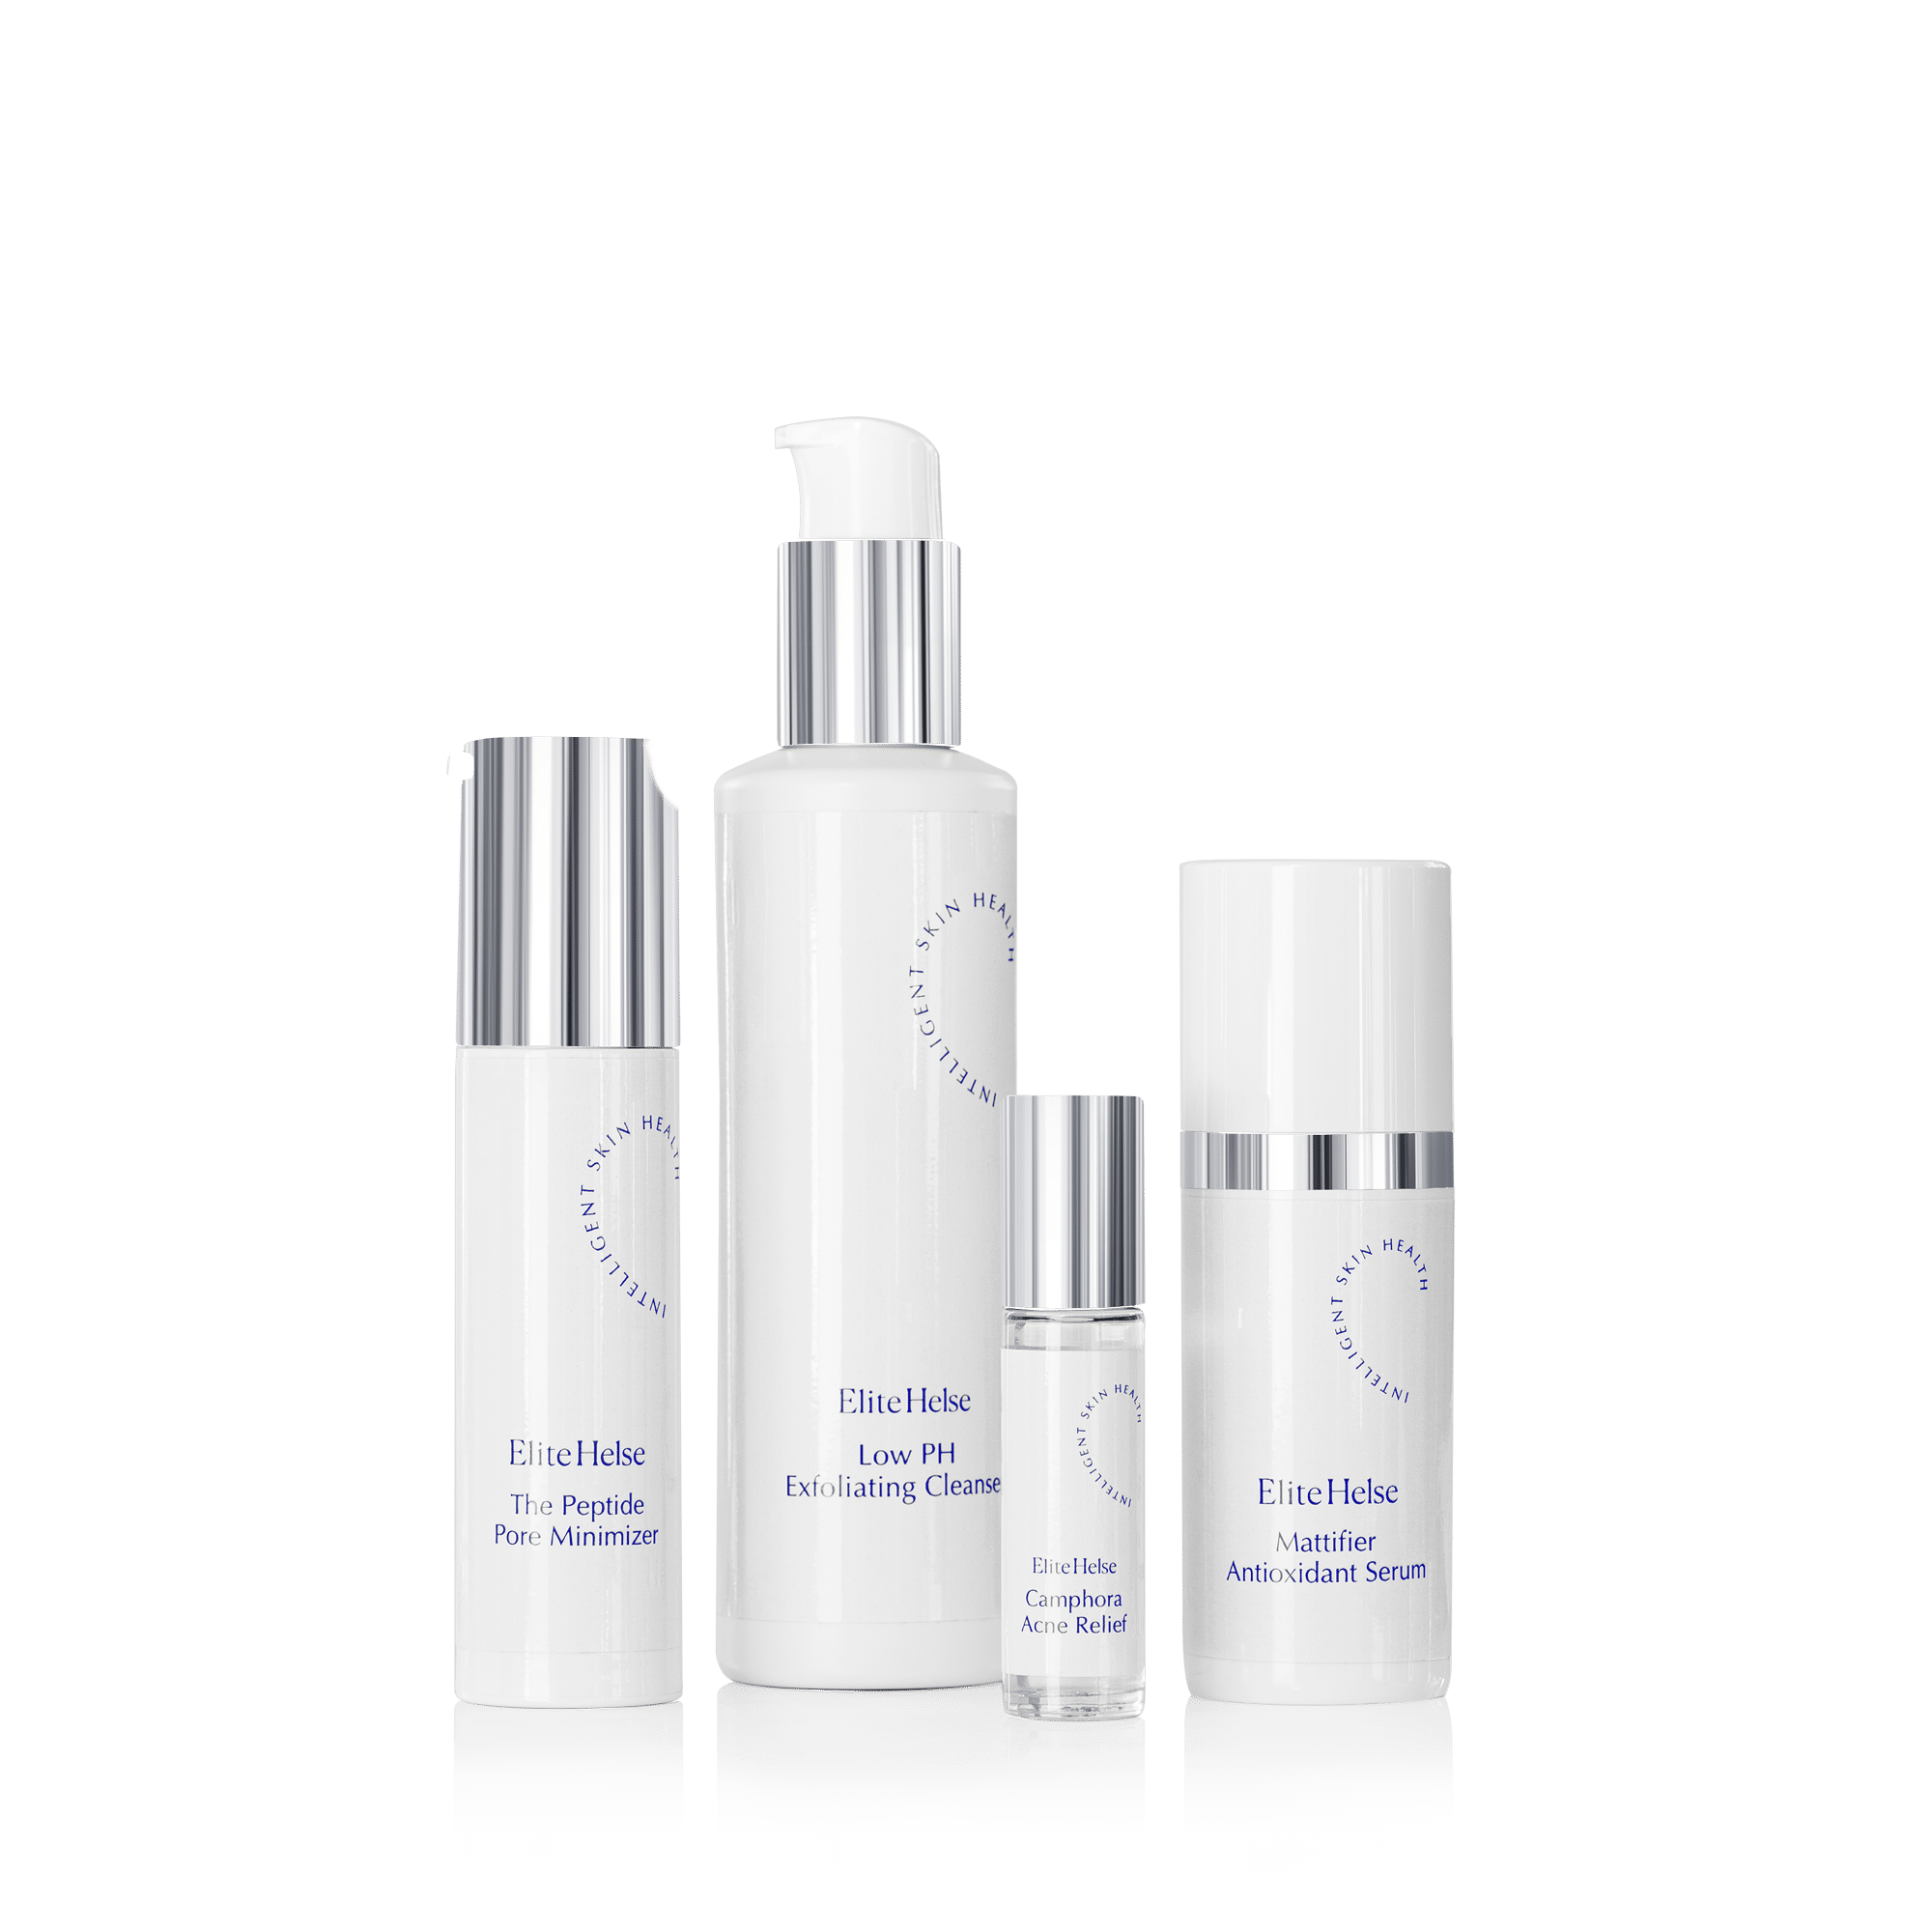 The Acne Clear Program